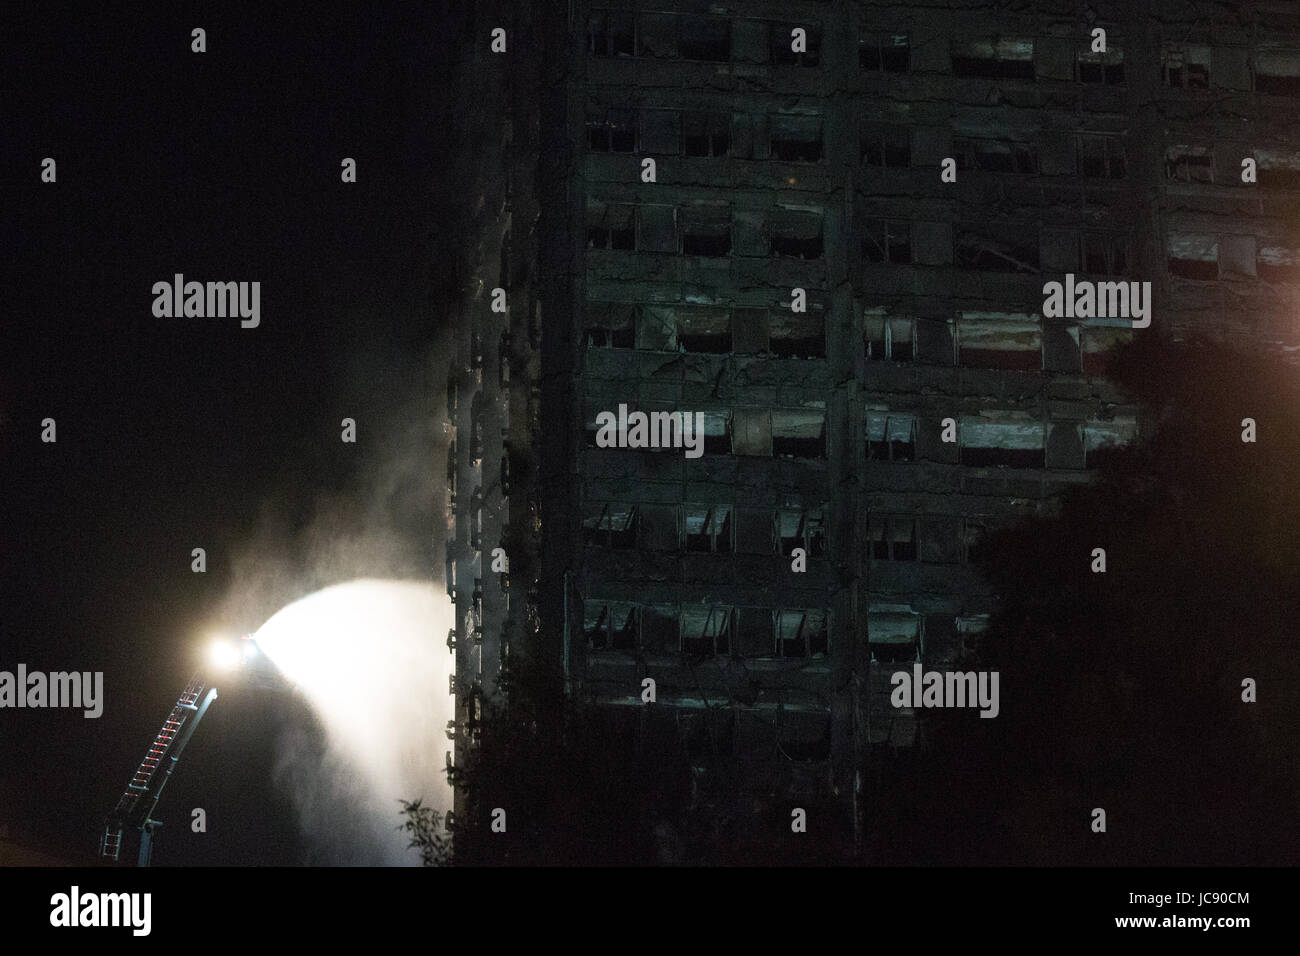 London, UK. 15th June, 2017. Firefighters spray water onto a still smouldering Grenfell Tower at around 1.30am. - Stock Image